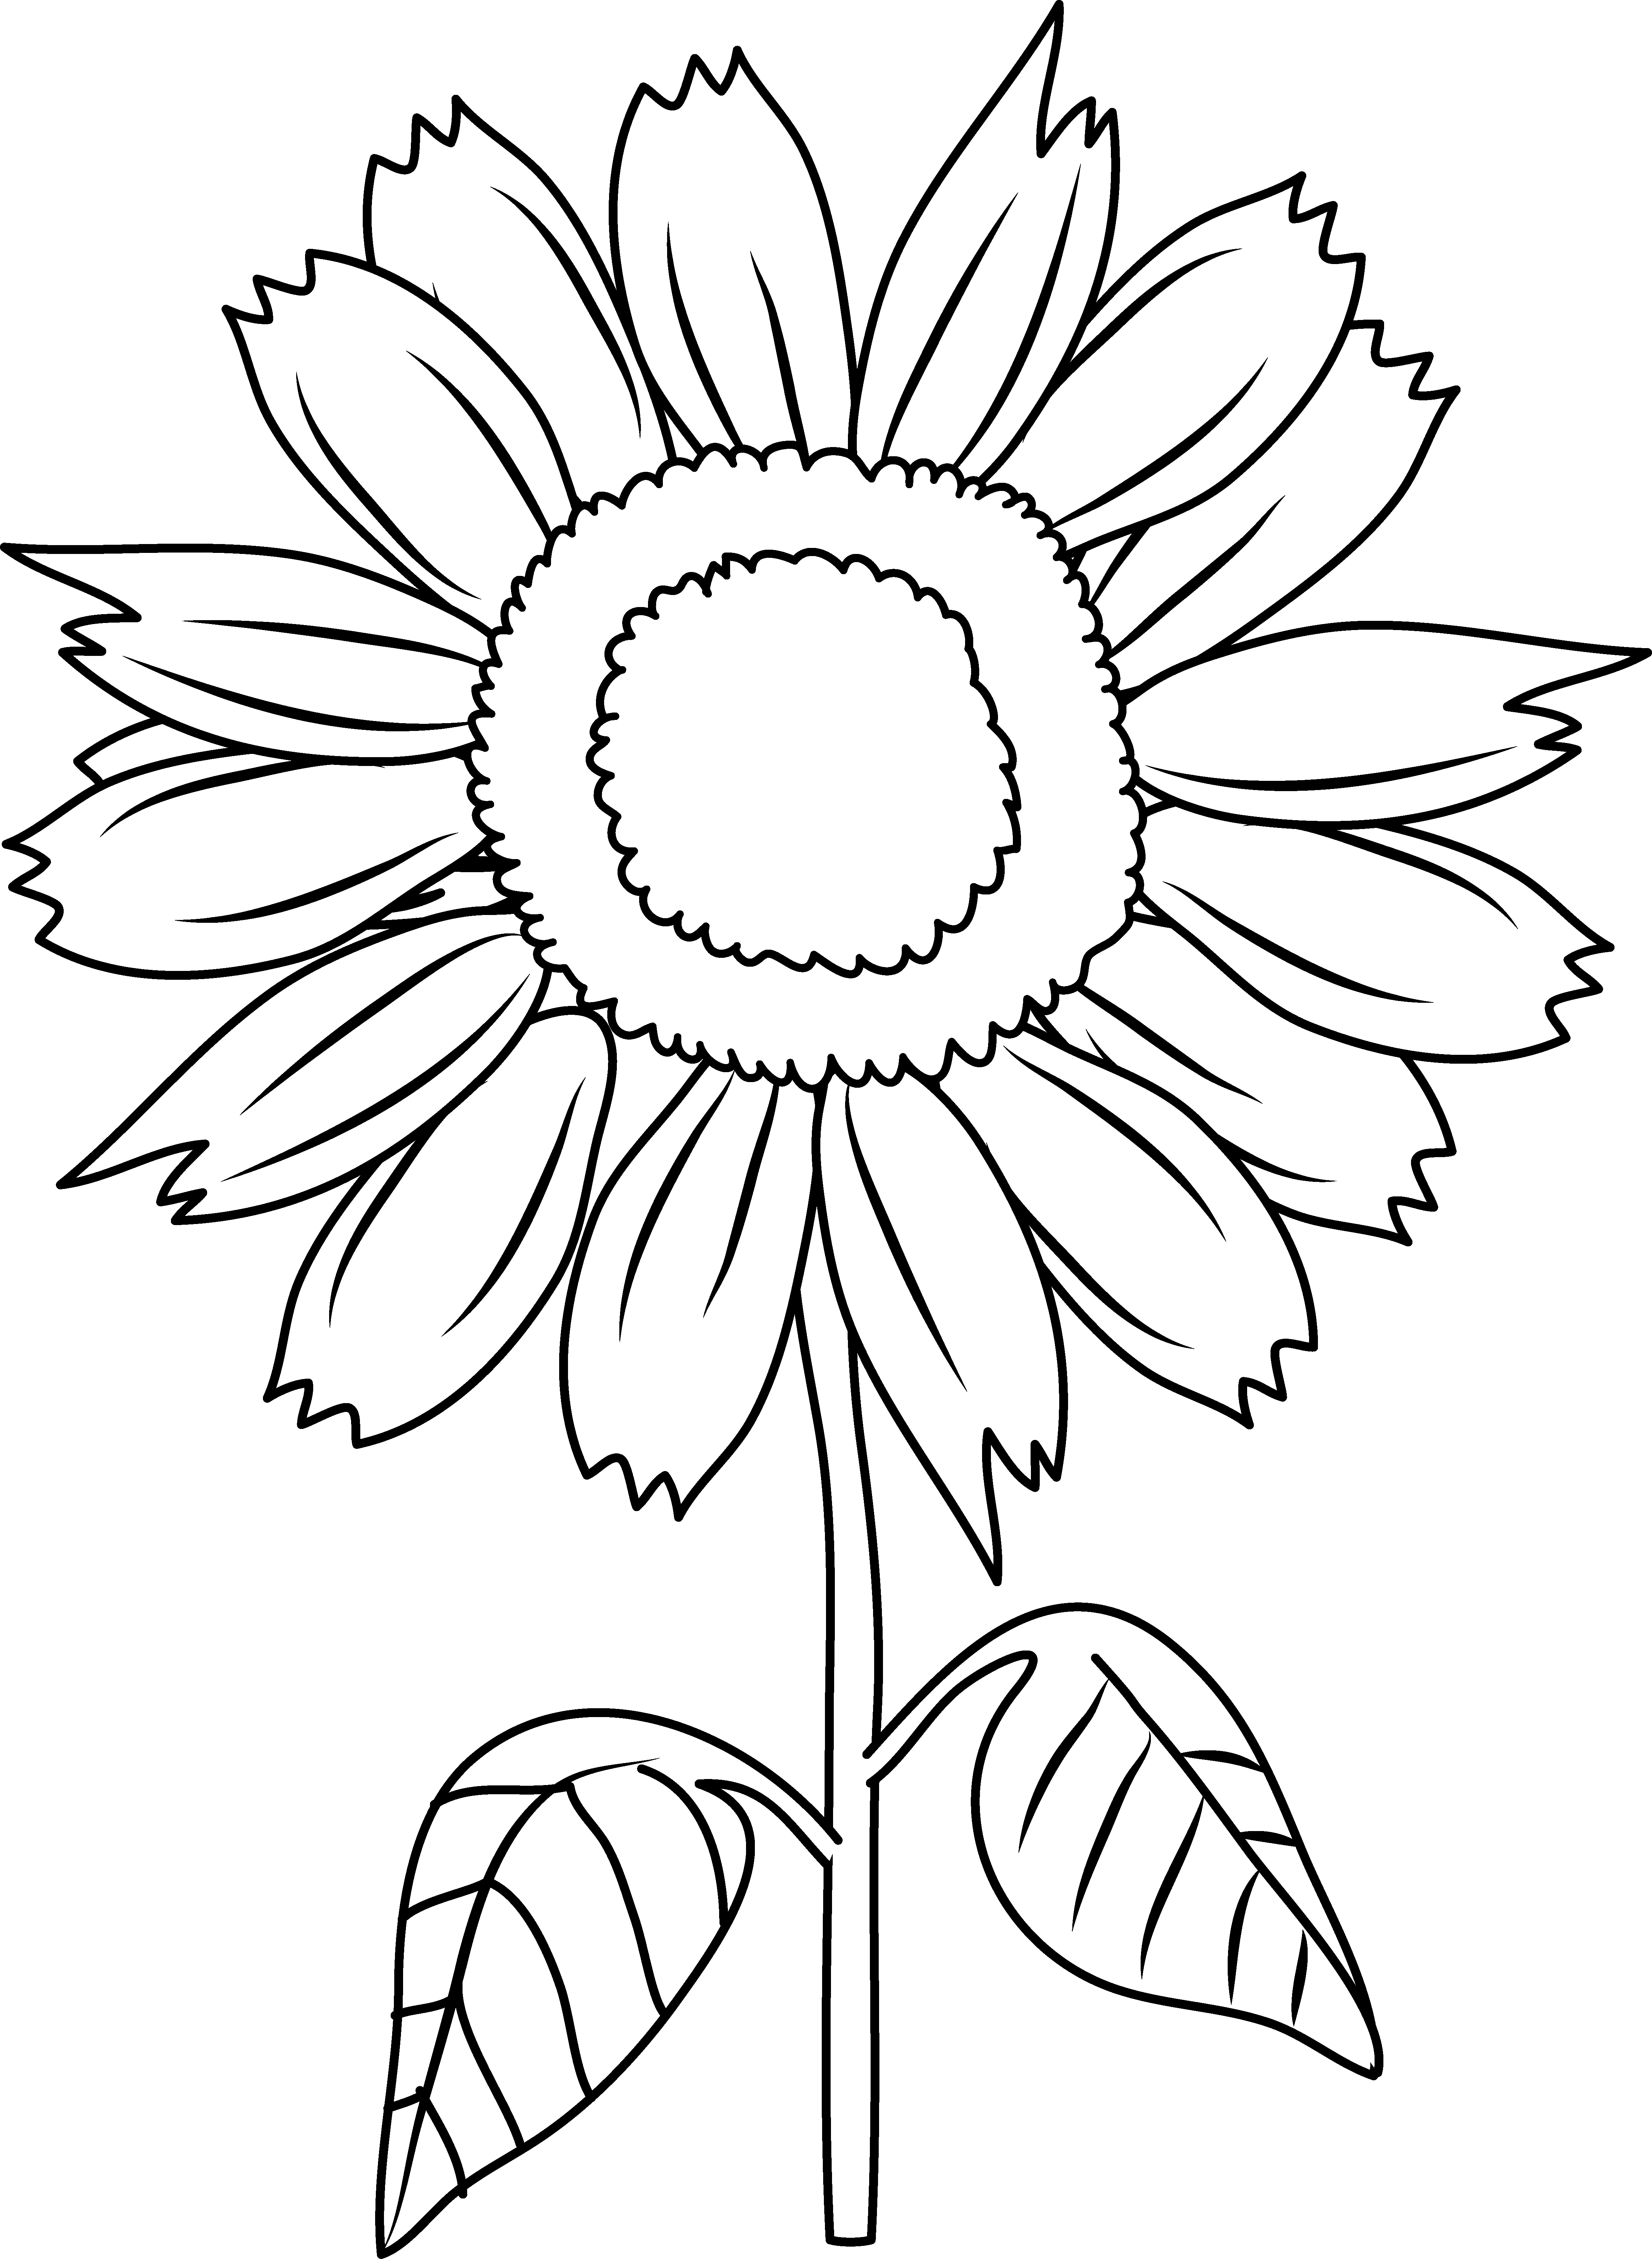 coloring image of a flower flower outline coloring page free stock photo public coloring flower of image a